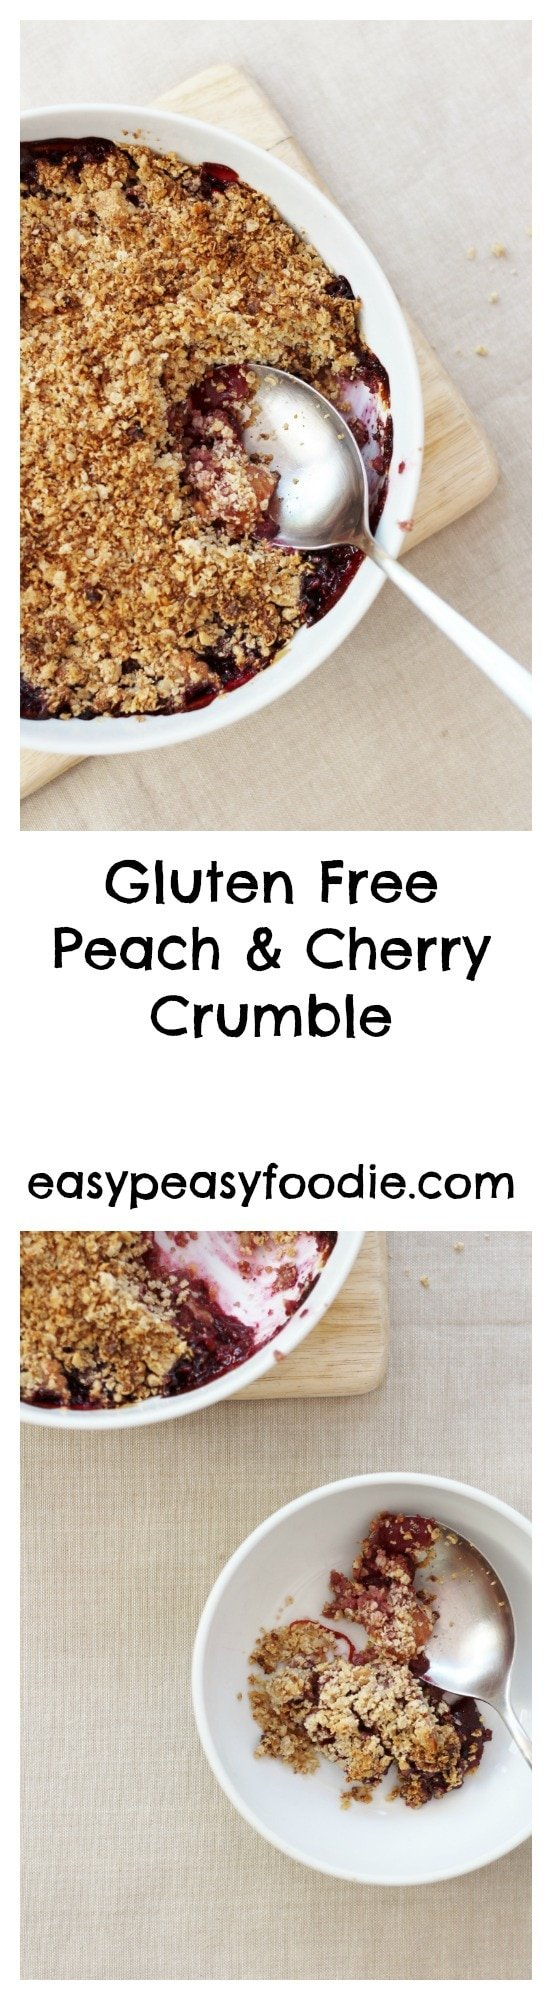 Gluten Free Peach and Cherry Crumble - pinnable image for Pinterest